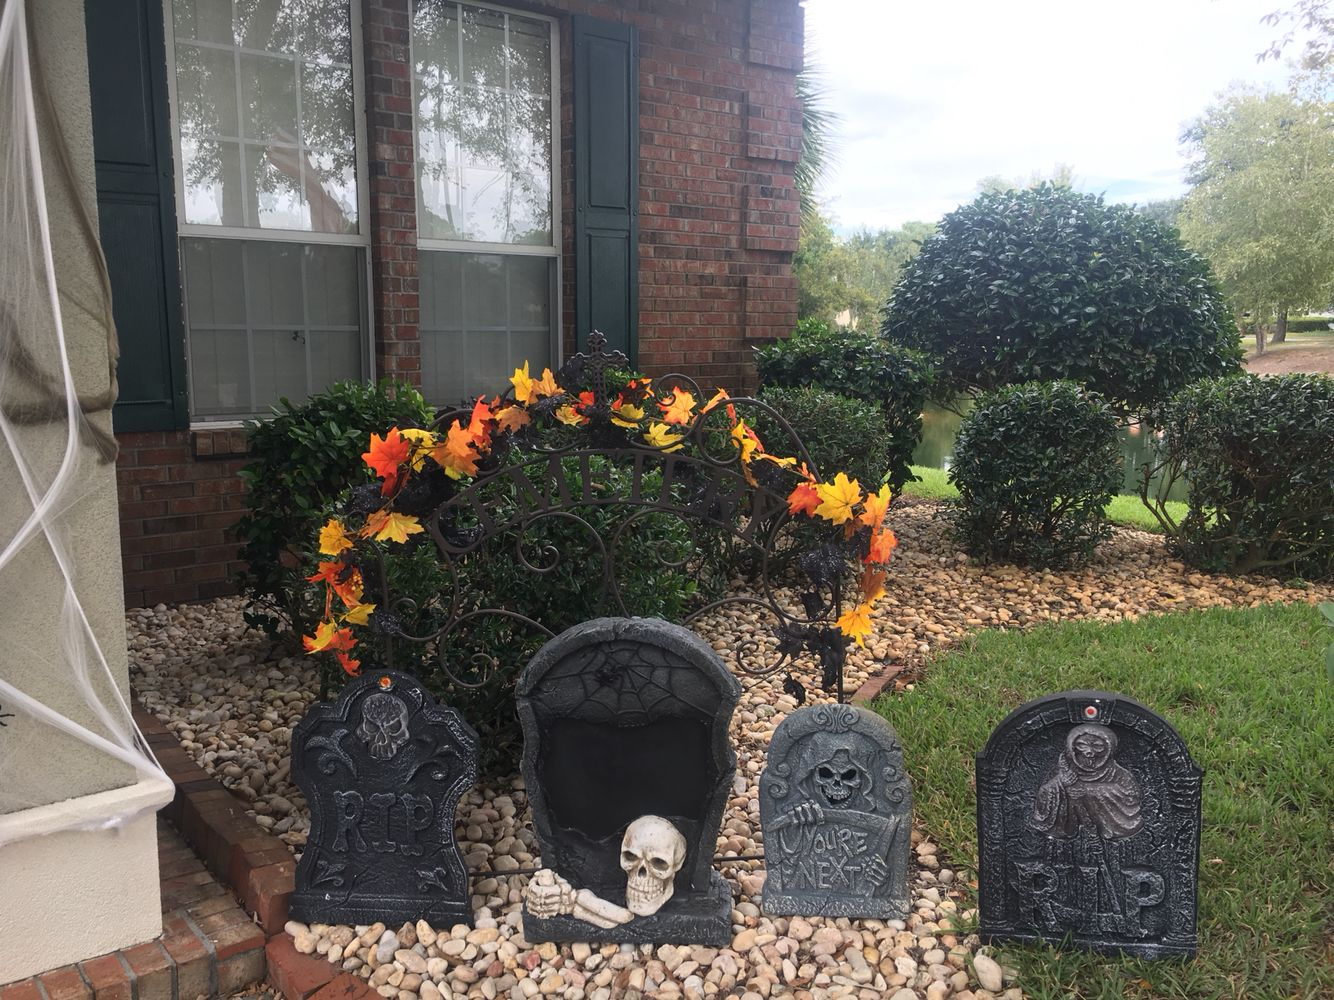 Halloween Decorations 2016 - Grave Yard, Front Porch Trick Or - front yard halloween decorations